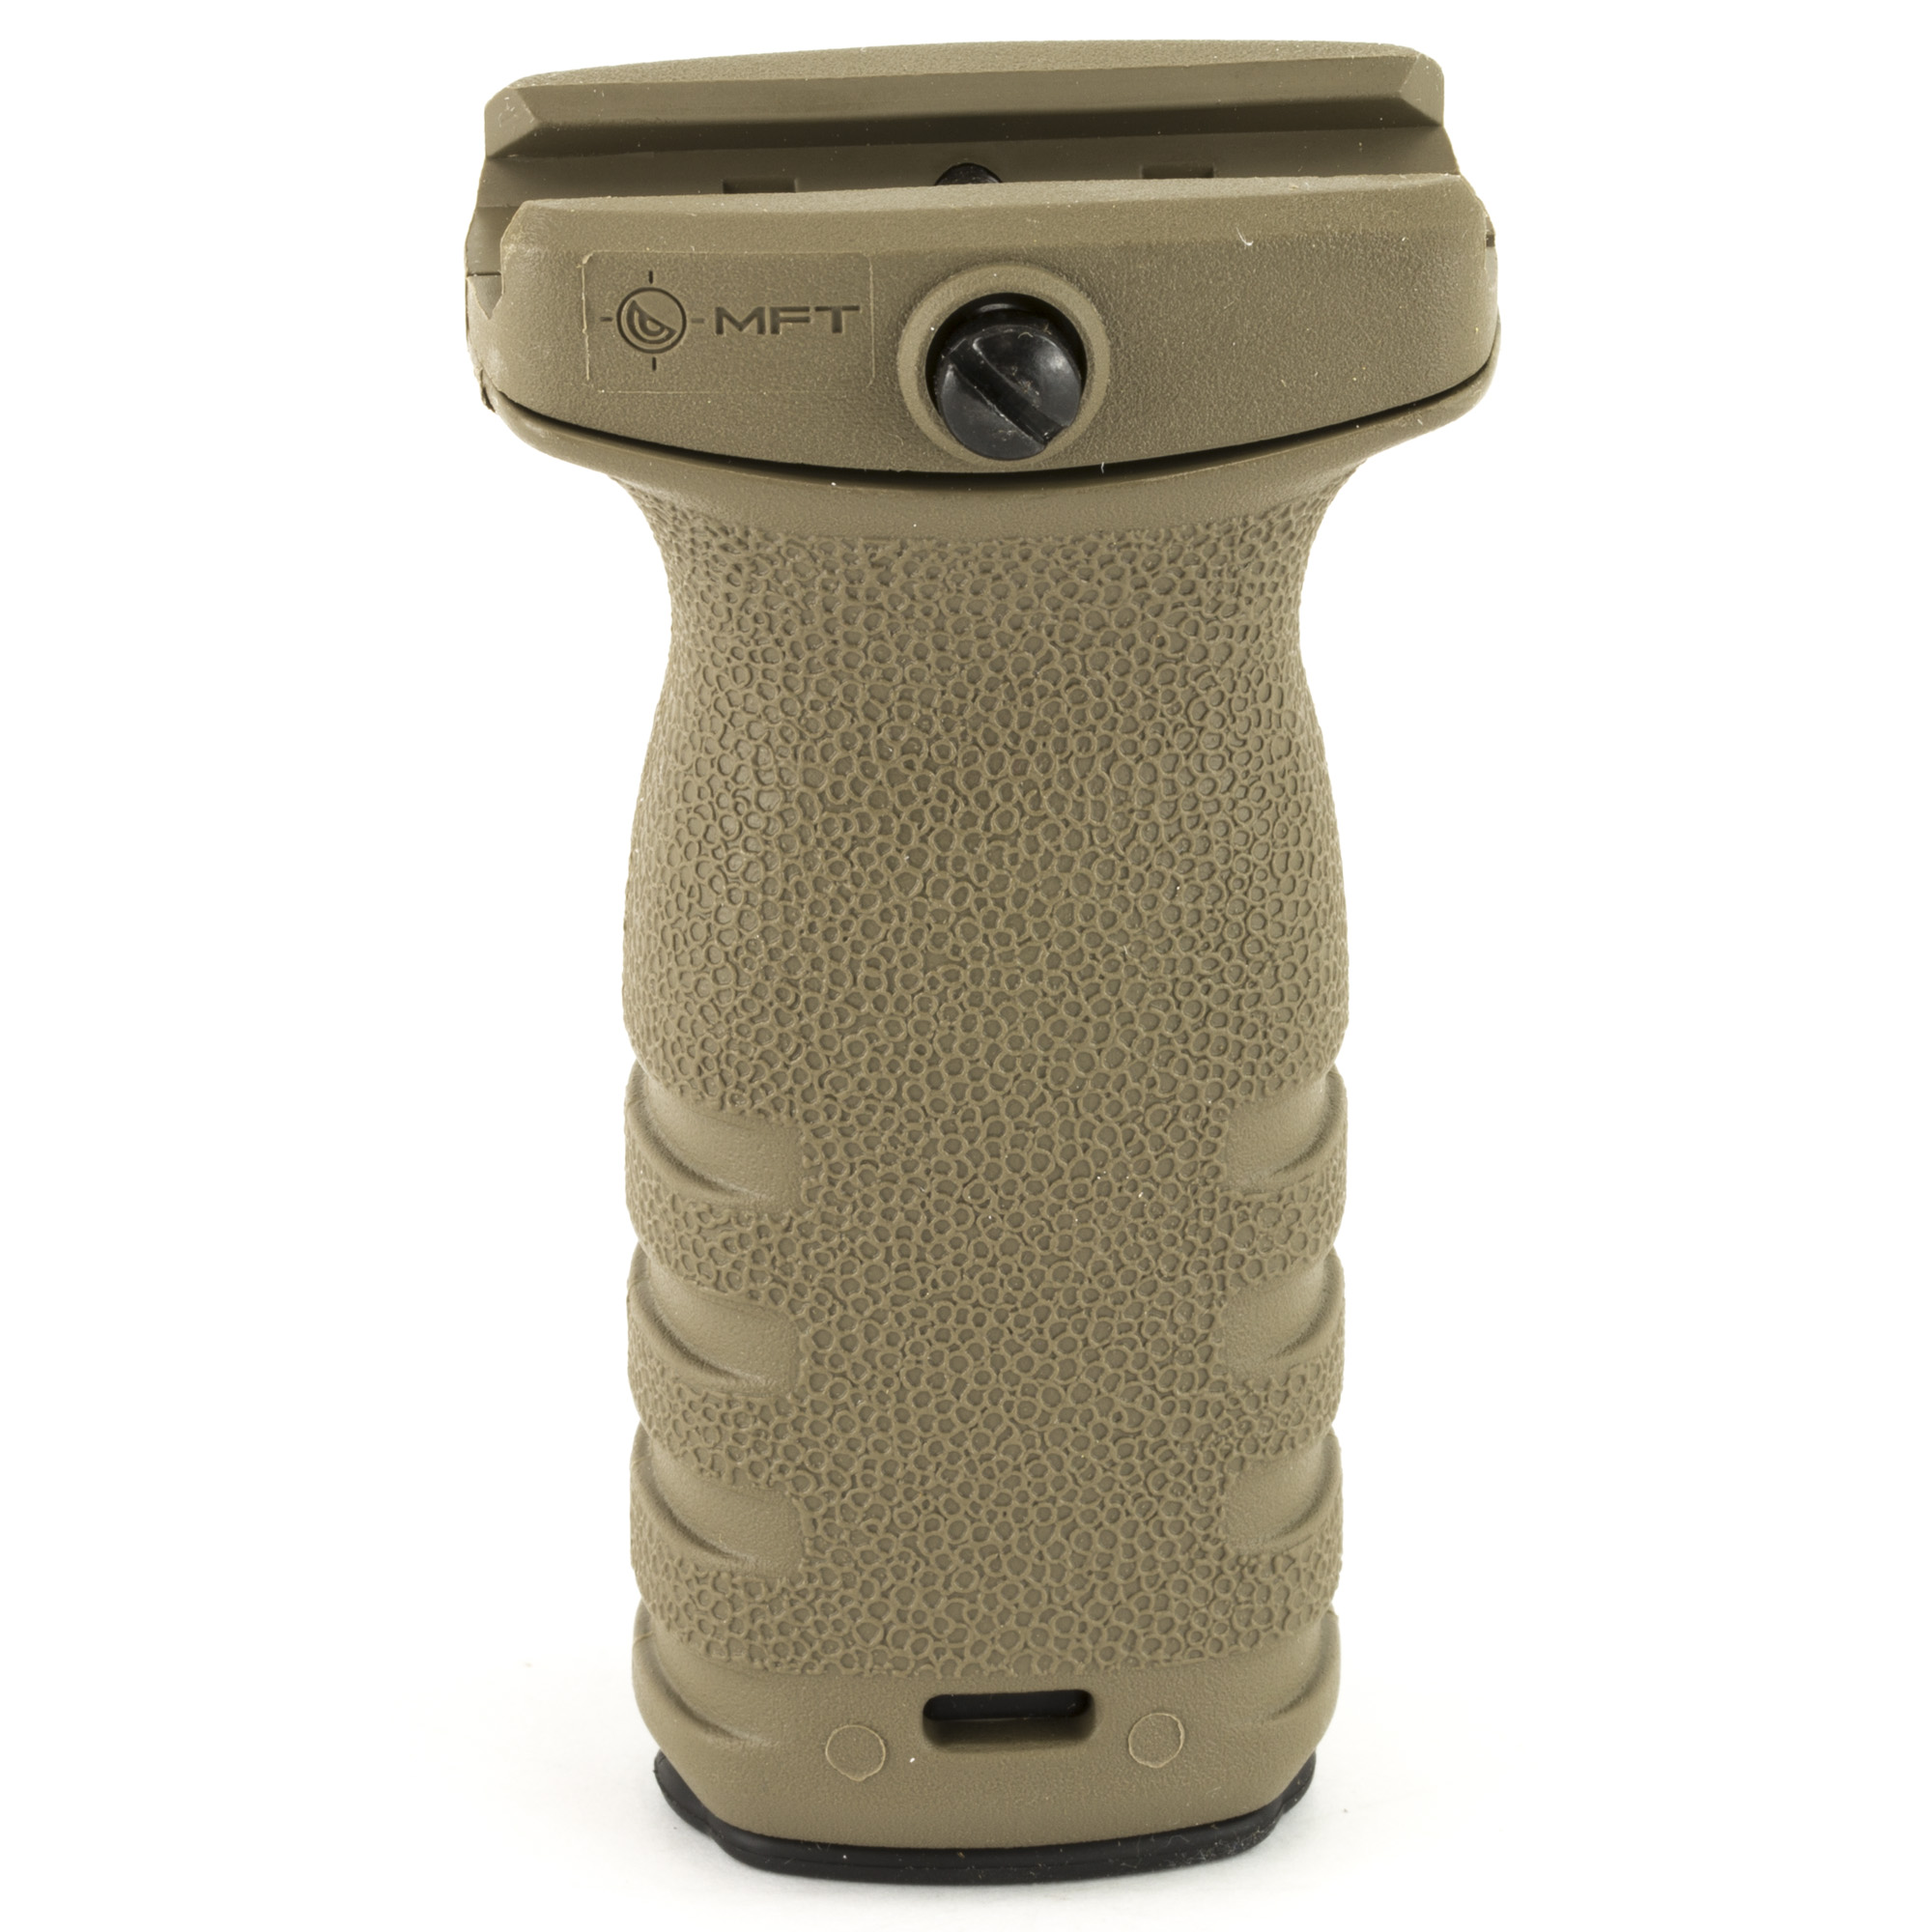 """The React Short grip is a compact textured vertical grip designed to minimize material and dimension while providing a positive grip surface. Allows the support hand to apply rearward pressure keeping the weapon shouldered"""" yielding better muzzle control and accuracy."""